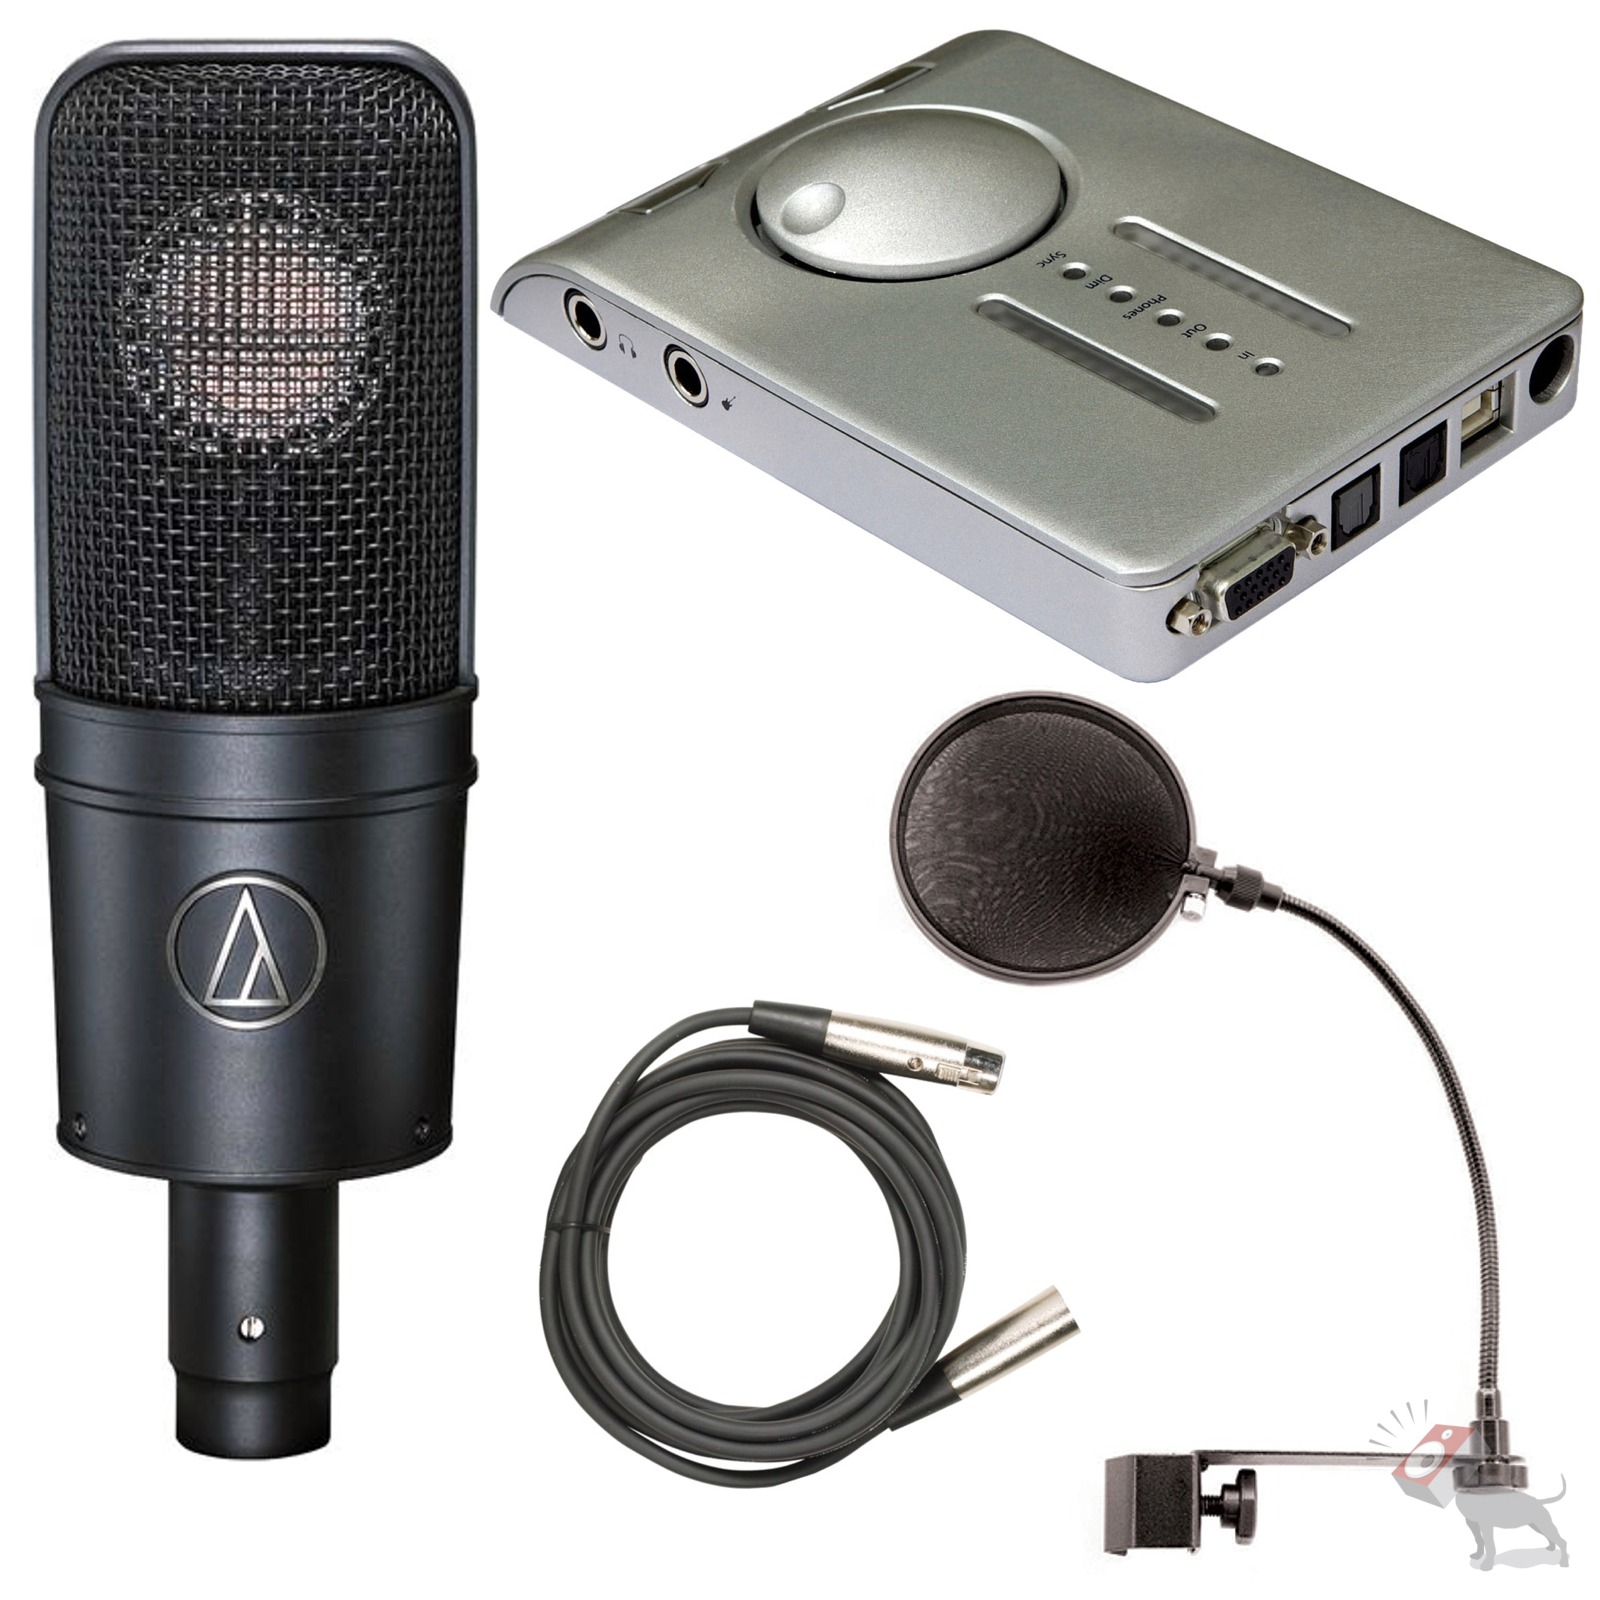 RME Babyface Silver Interface AT4040 Recording Microphone Pop Filter & Mic Cable   eBay